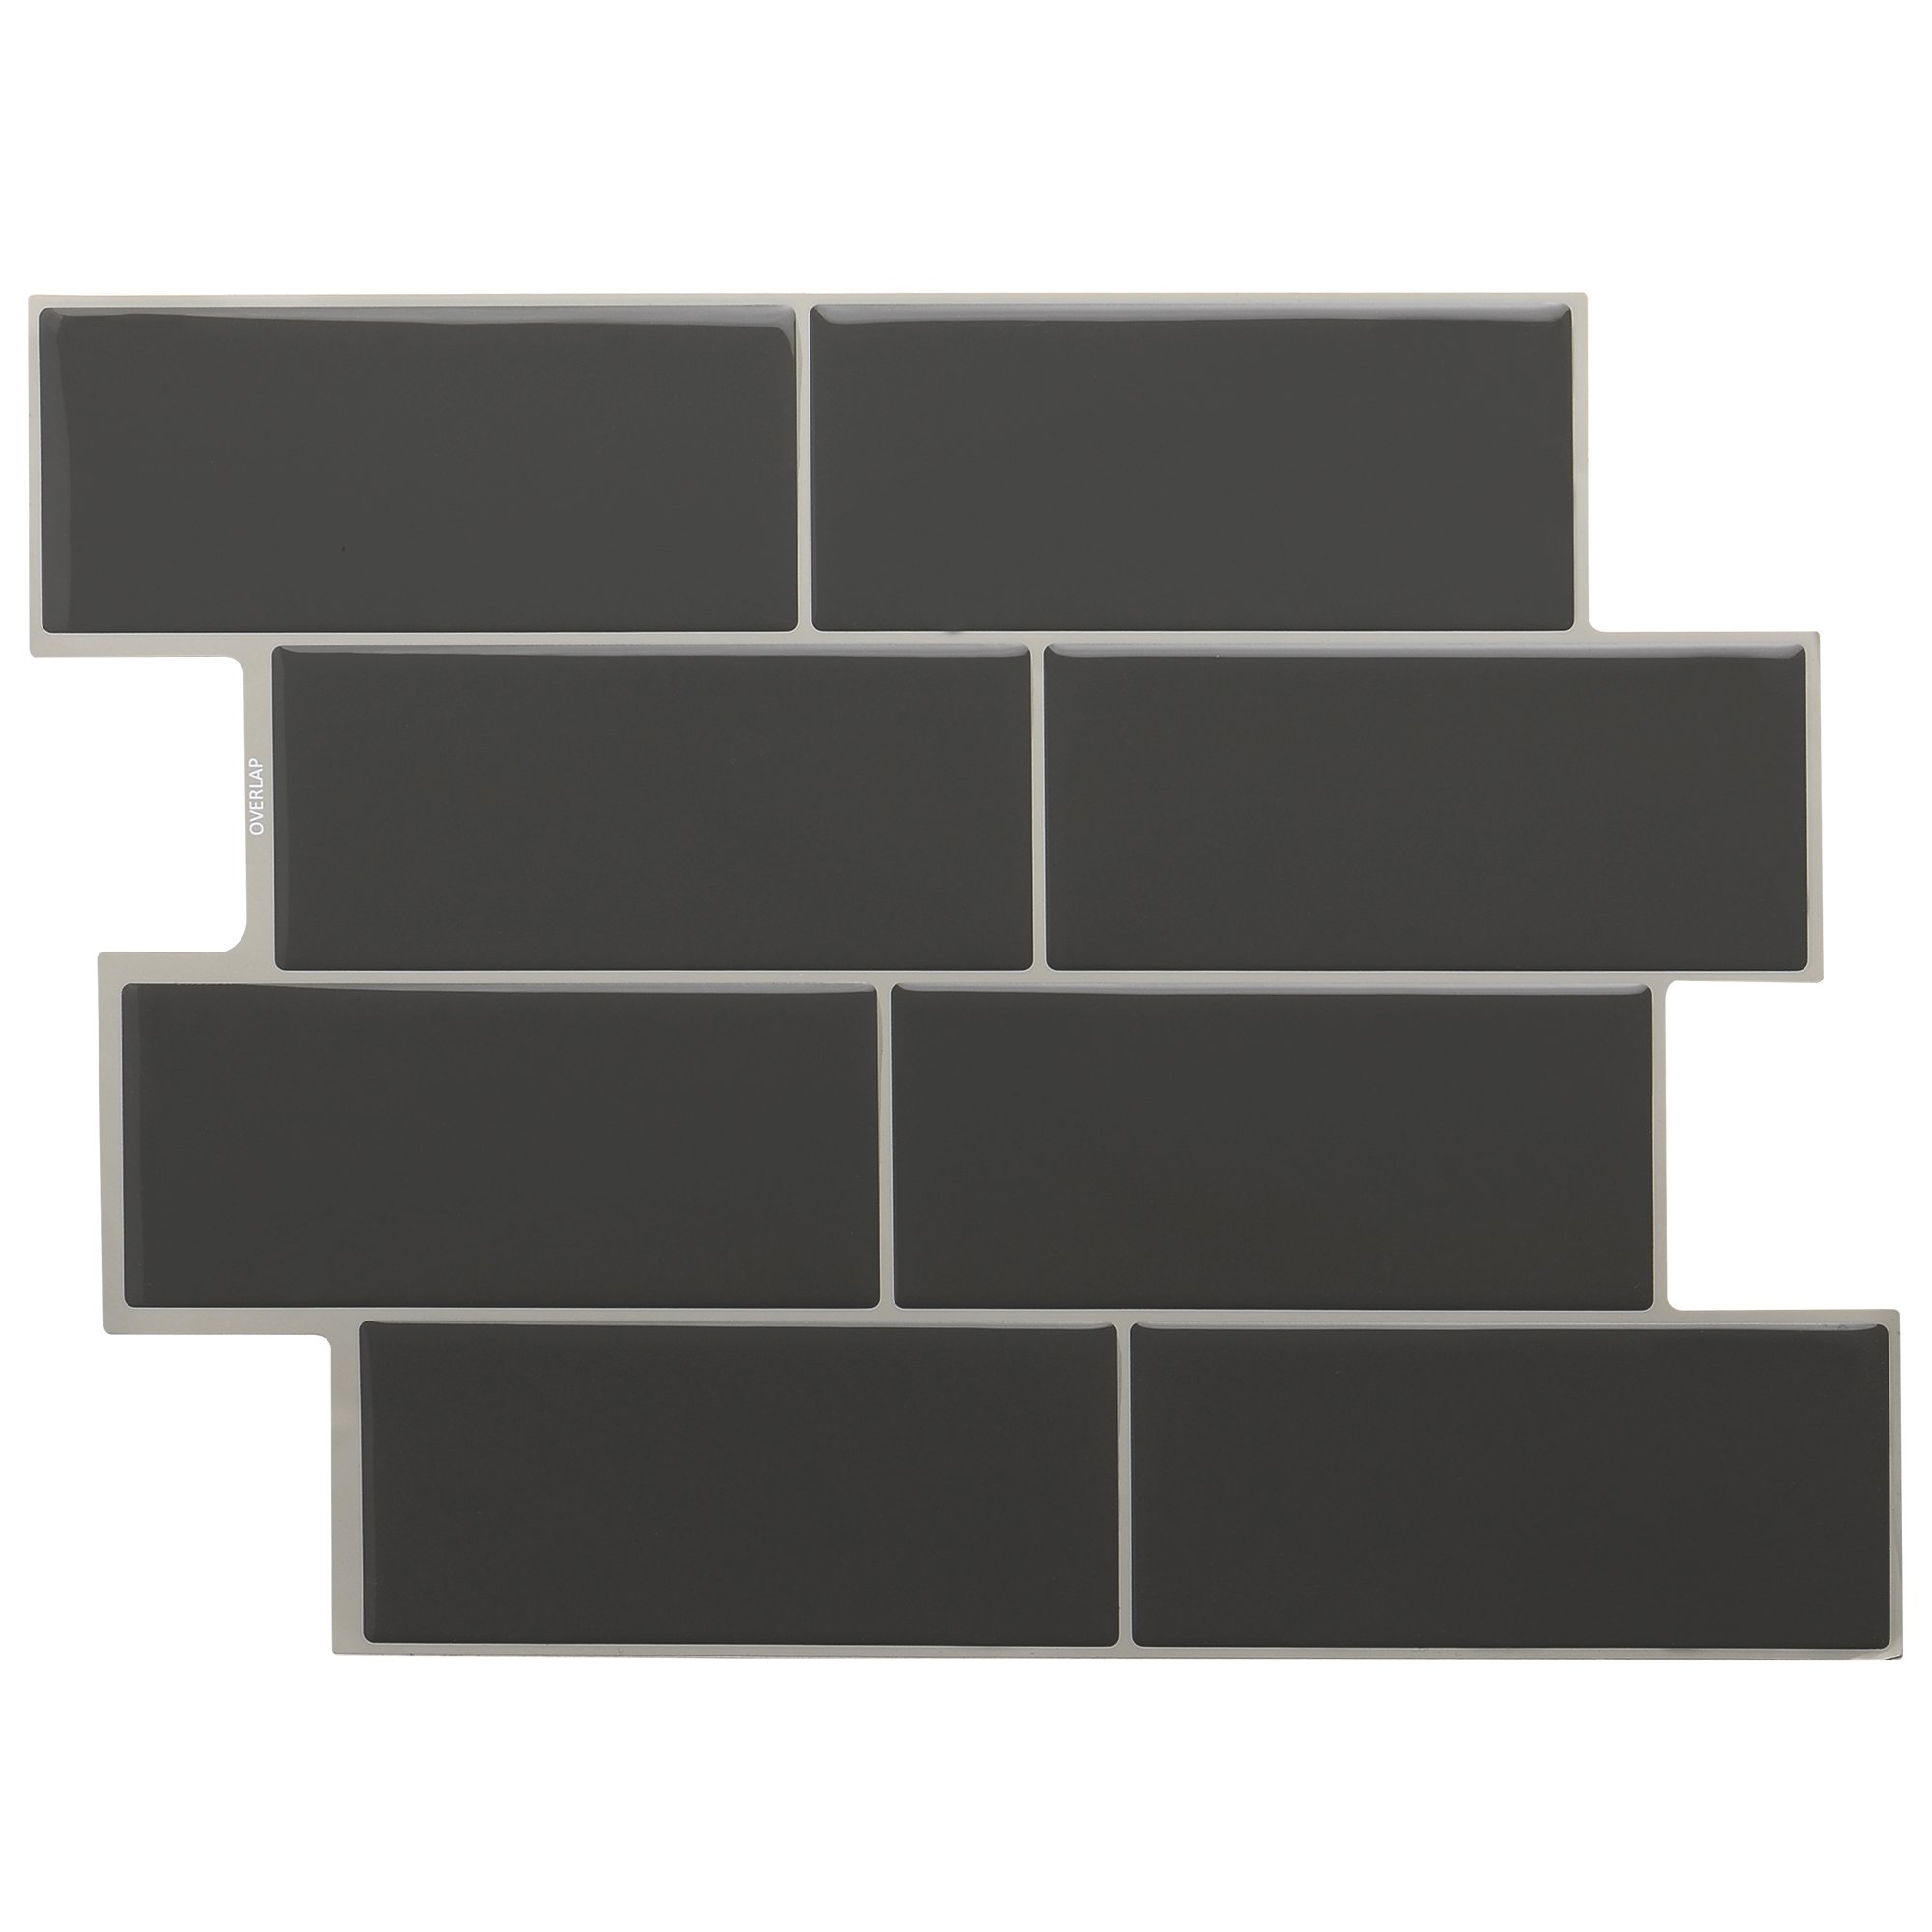 STICKGOO Peel and Stick Subway Tile, Stick on Tiles Backsplash for Kitchen & Bathroom 6 Sheet (Dark Grey) by STICKGOO